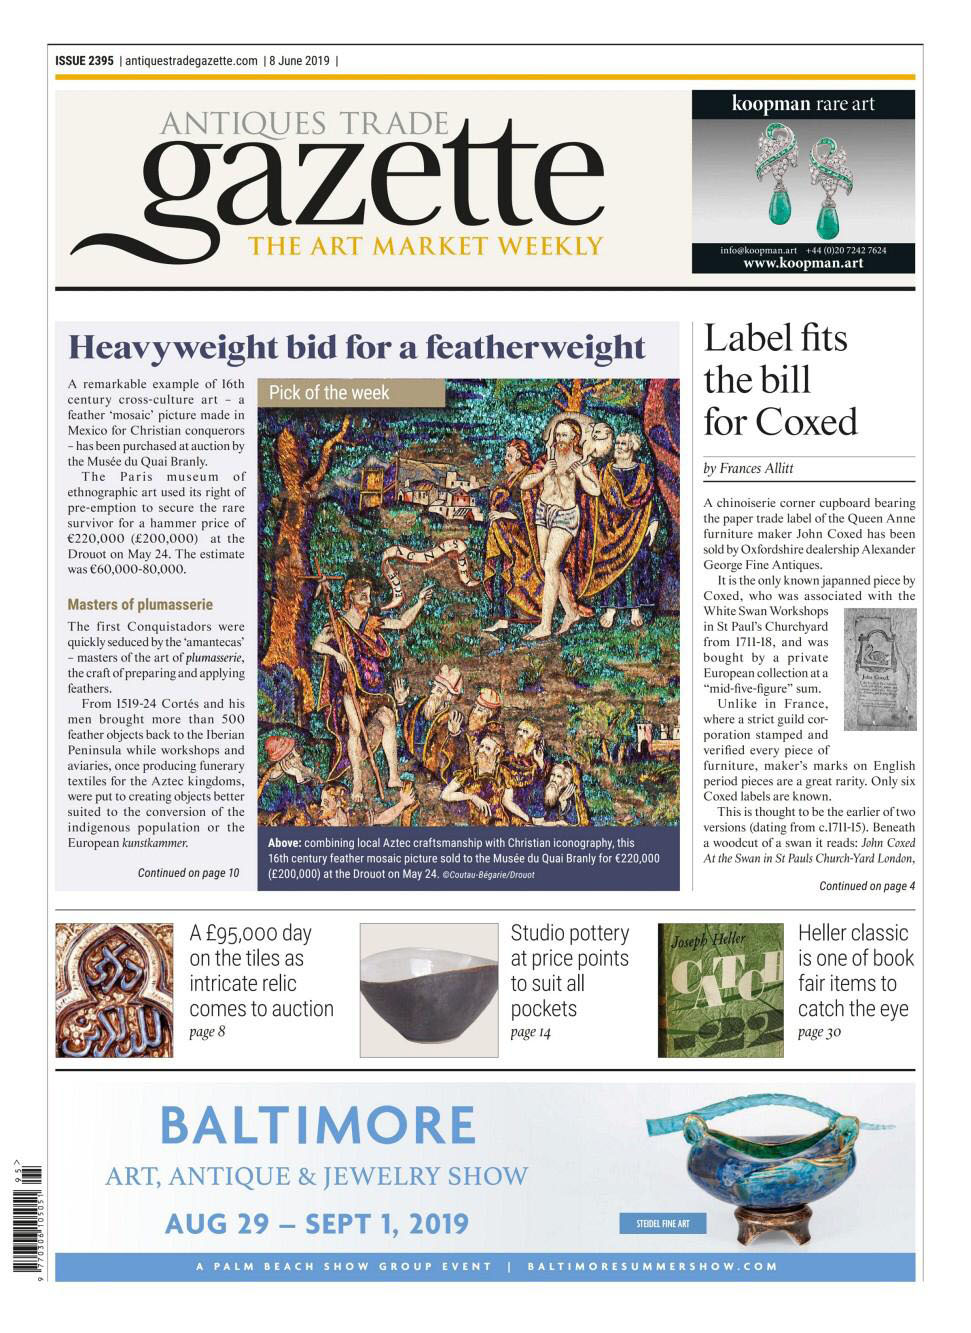 ALEXANDER GEORGE FINE ANTIQUES IN THE PRESS 1